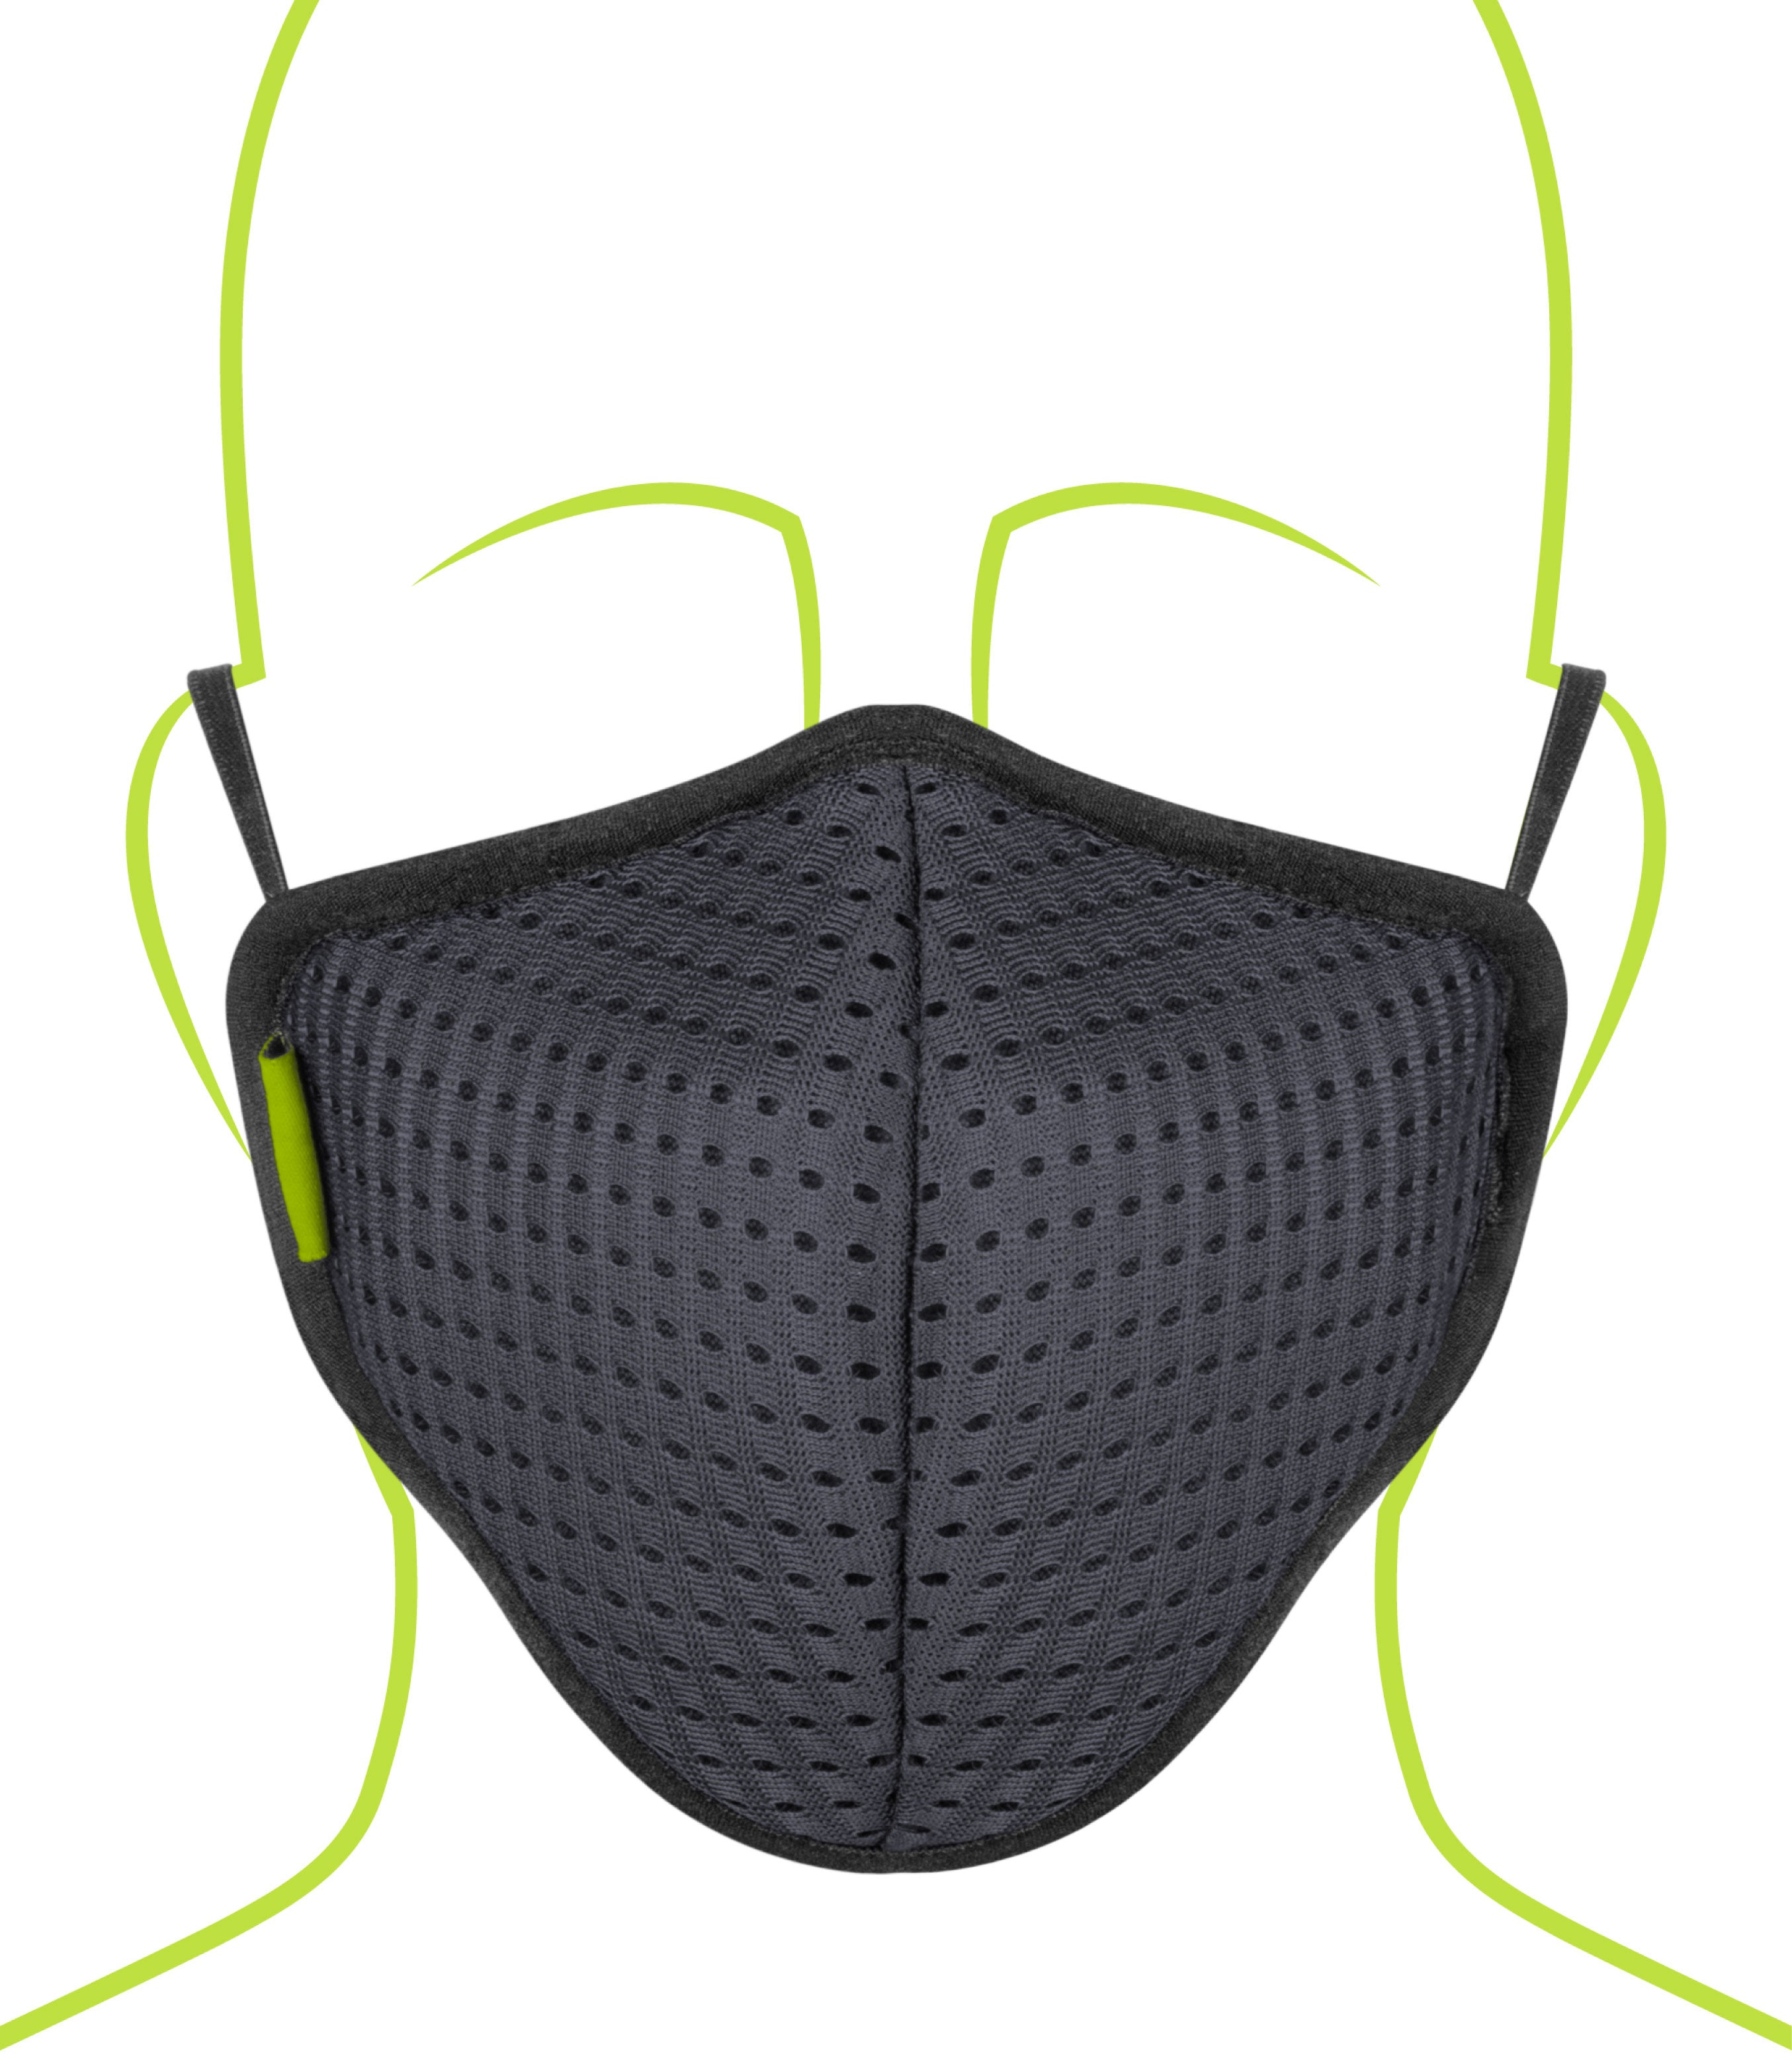 Rynox Defender Pro R95 Mask Dark Grey 7